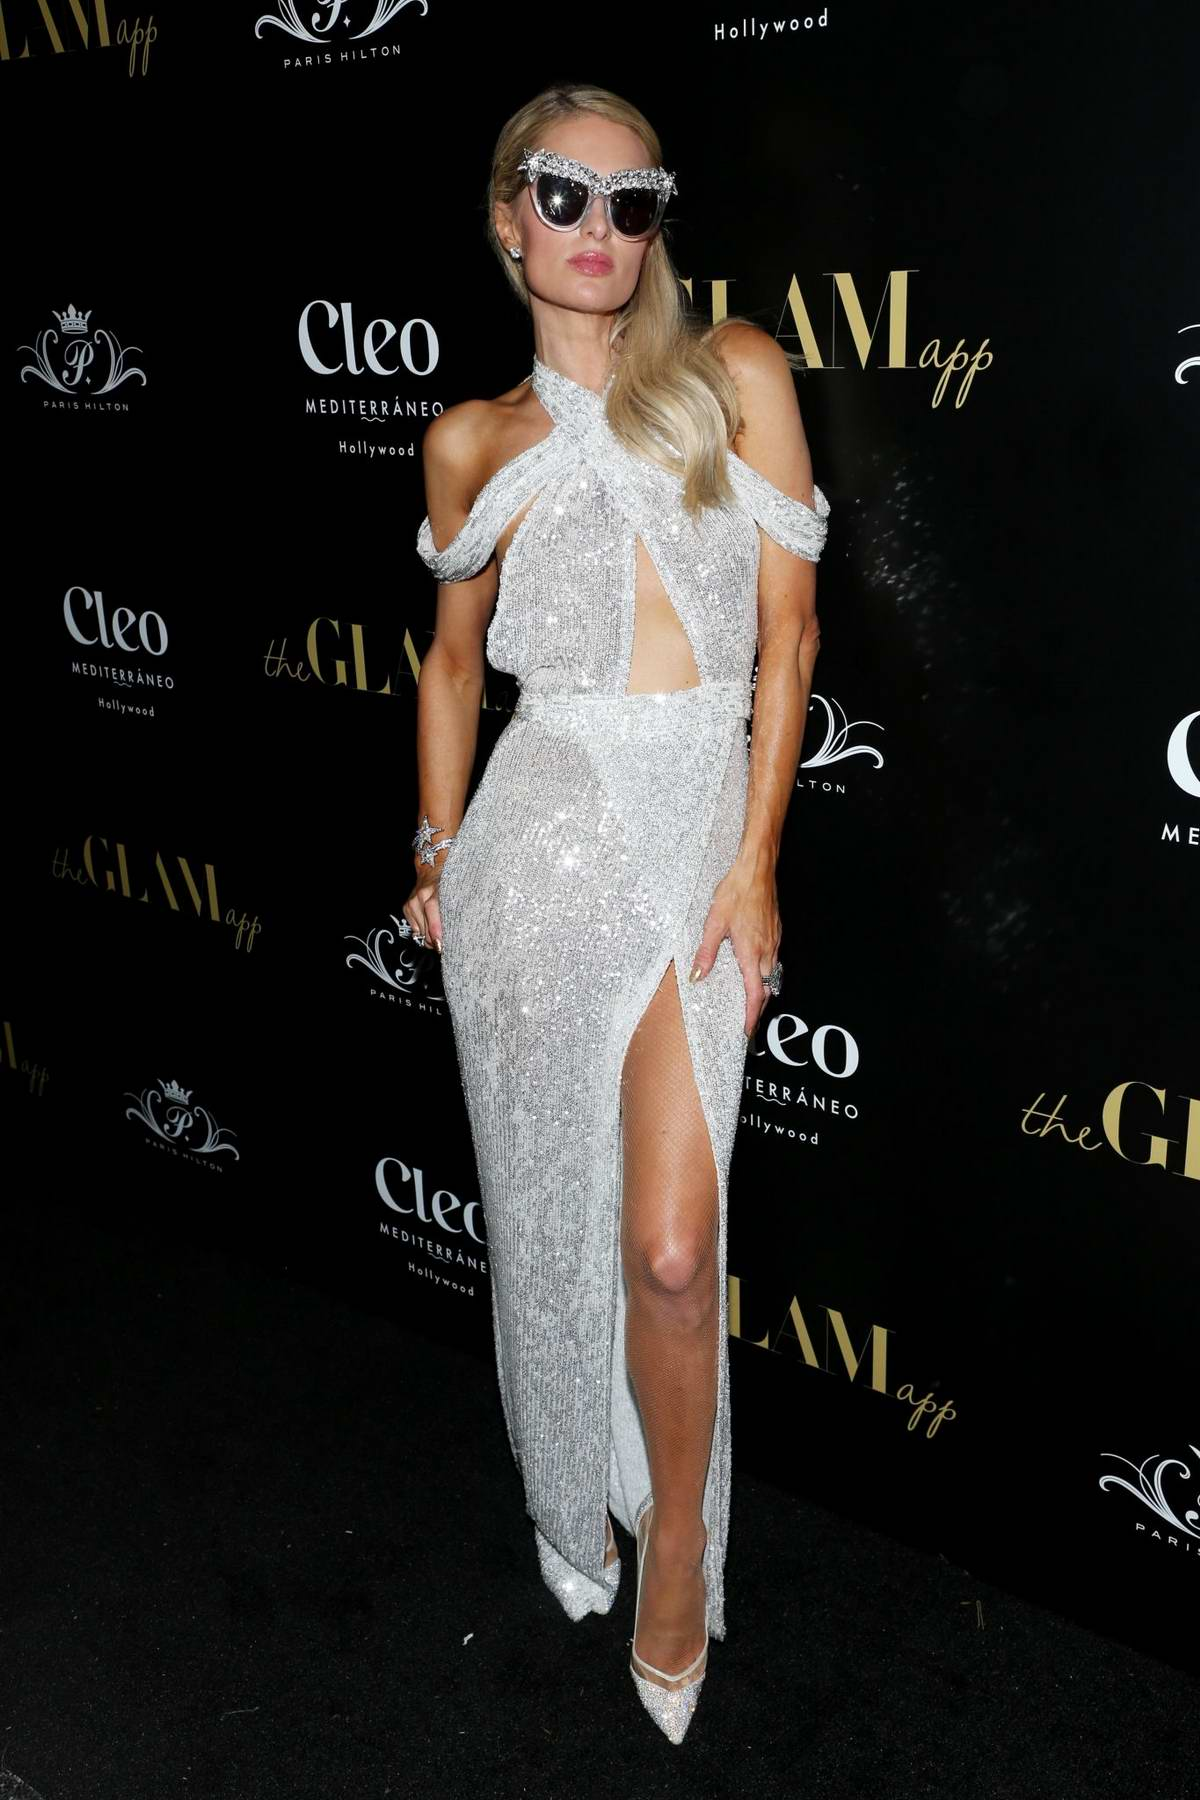 Paris Hilton attends The Glam App Celebration Event at Cleo in Hollywood, California